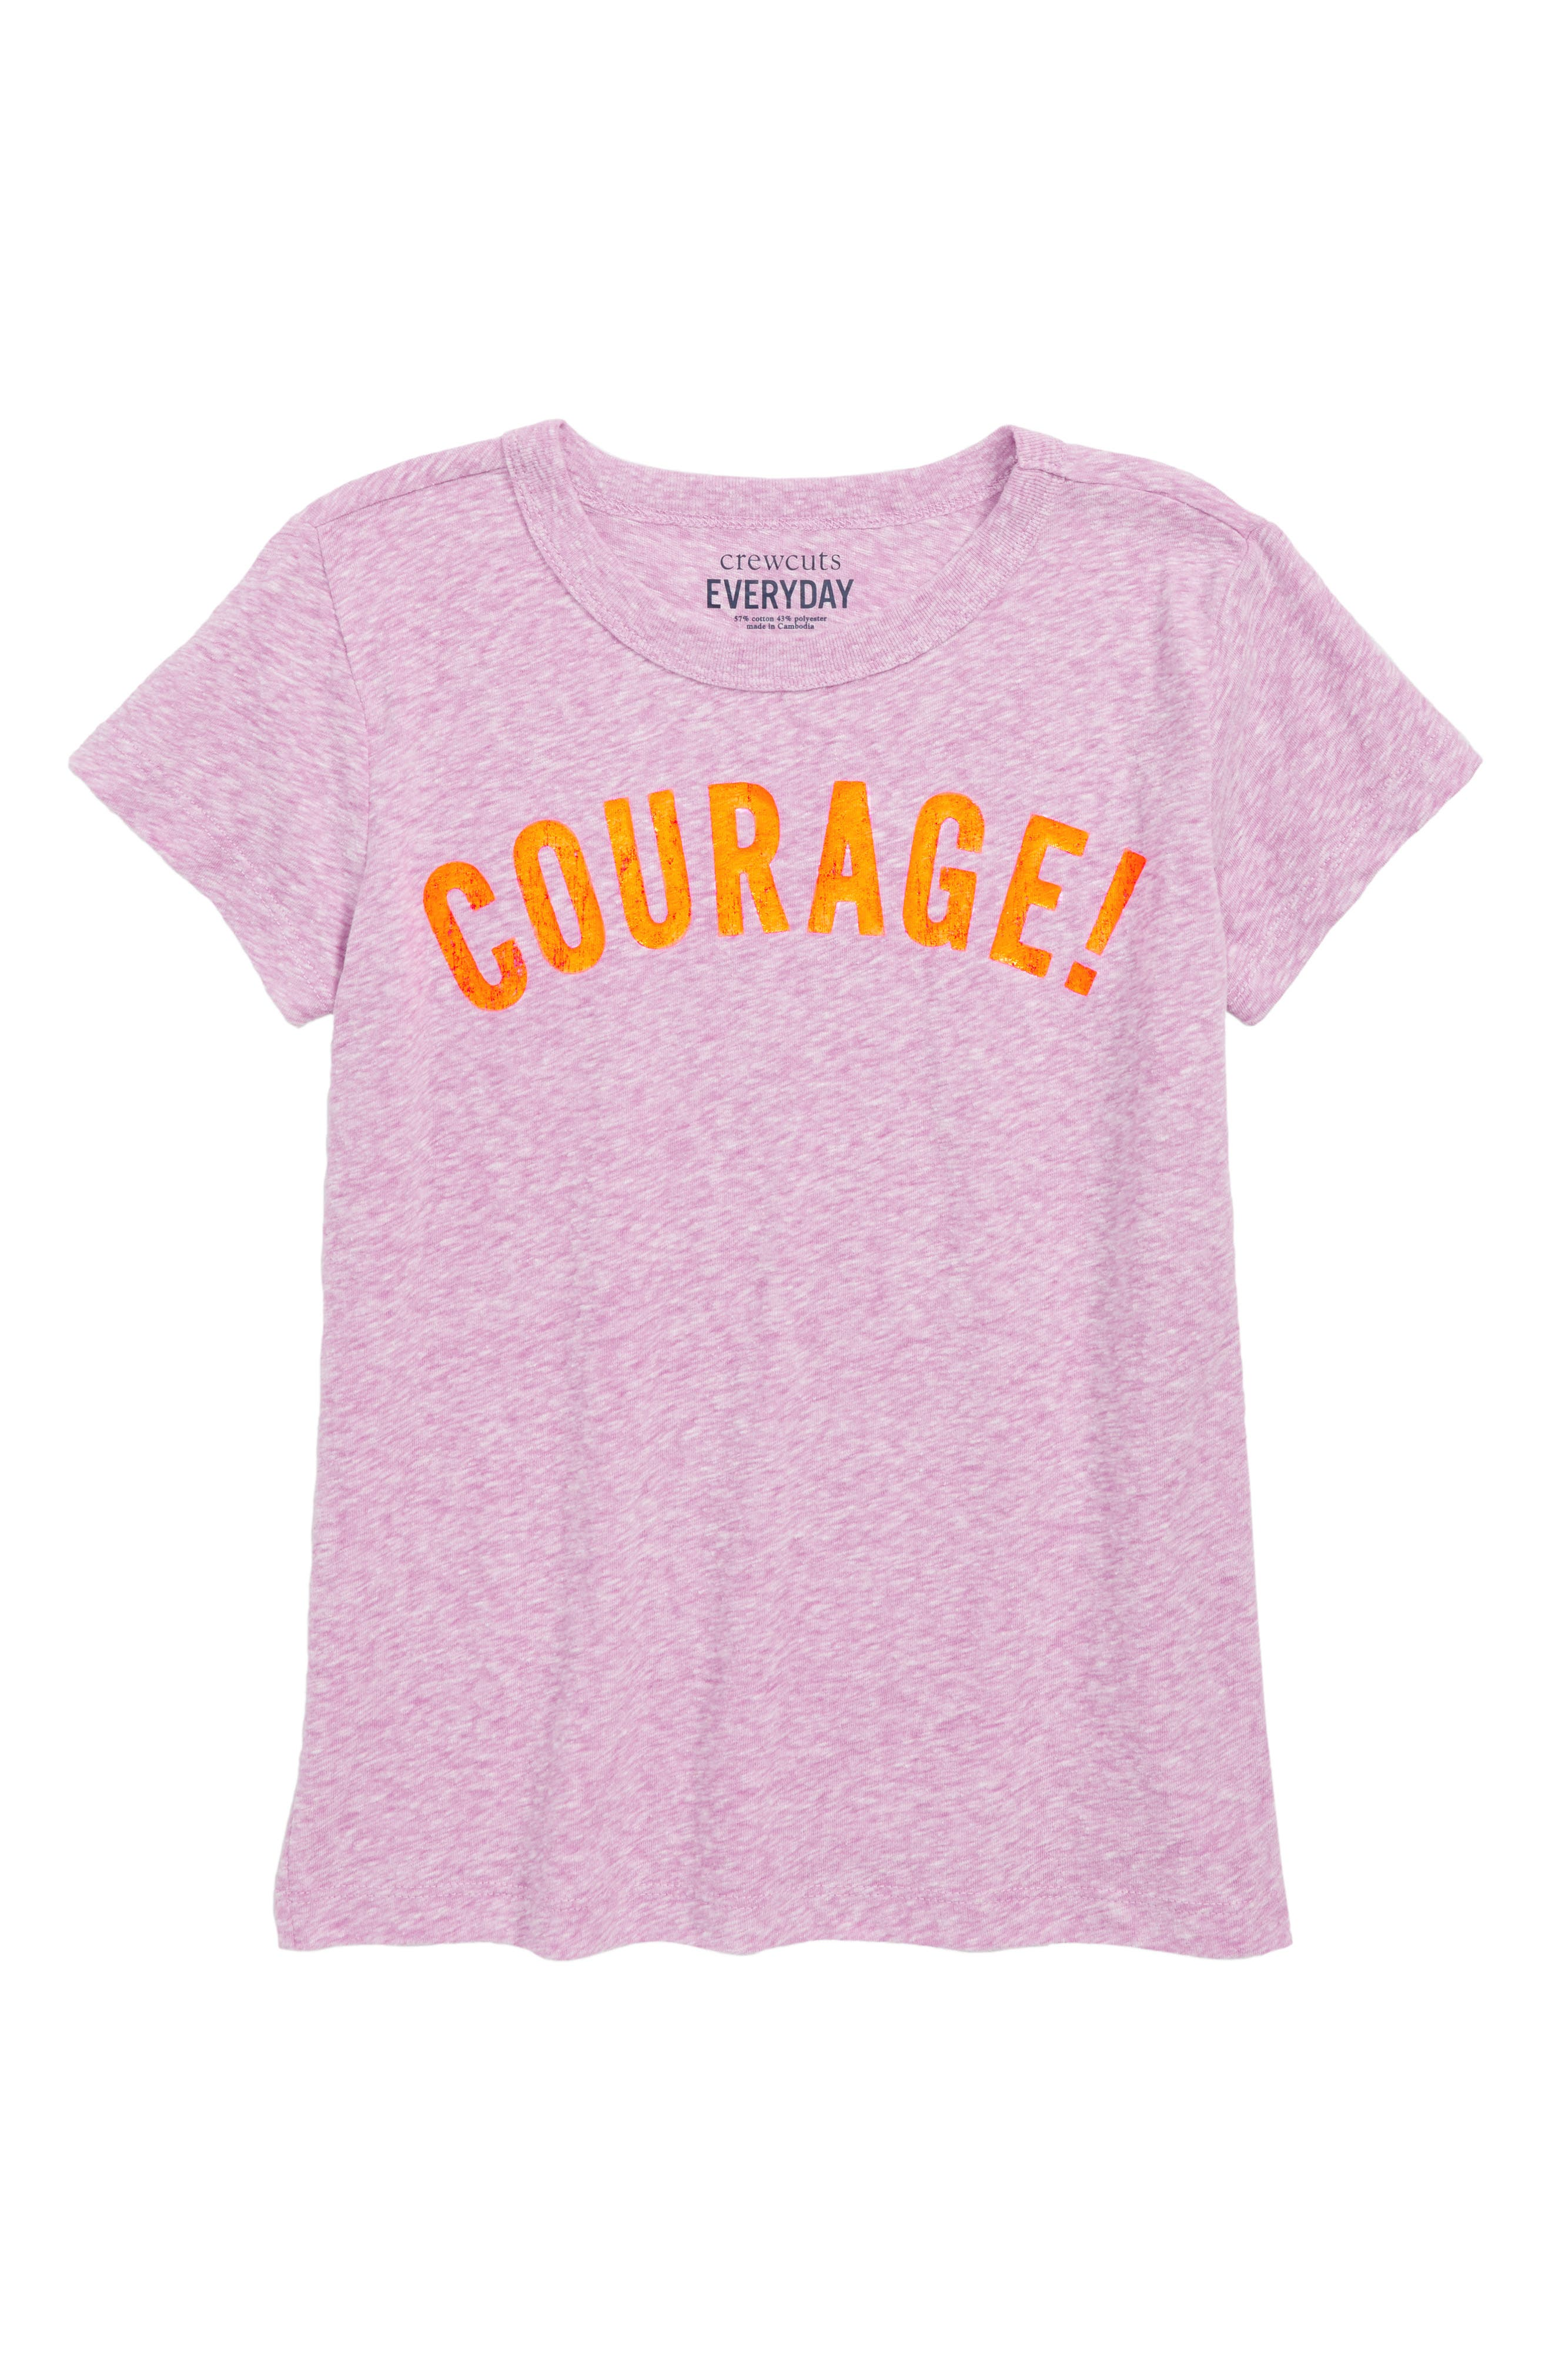 Courage Tee,                         Main,                         color, 500